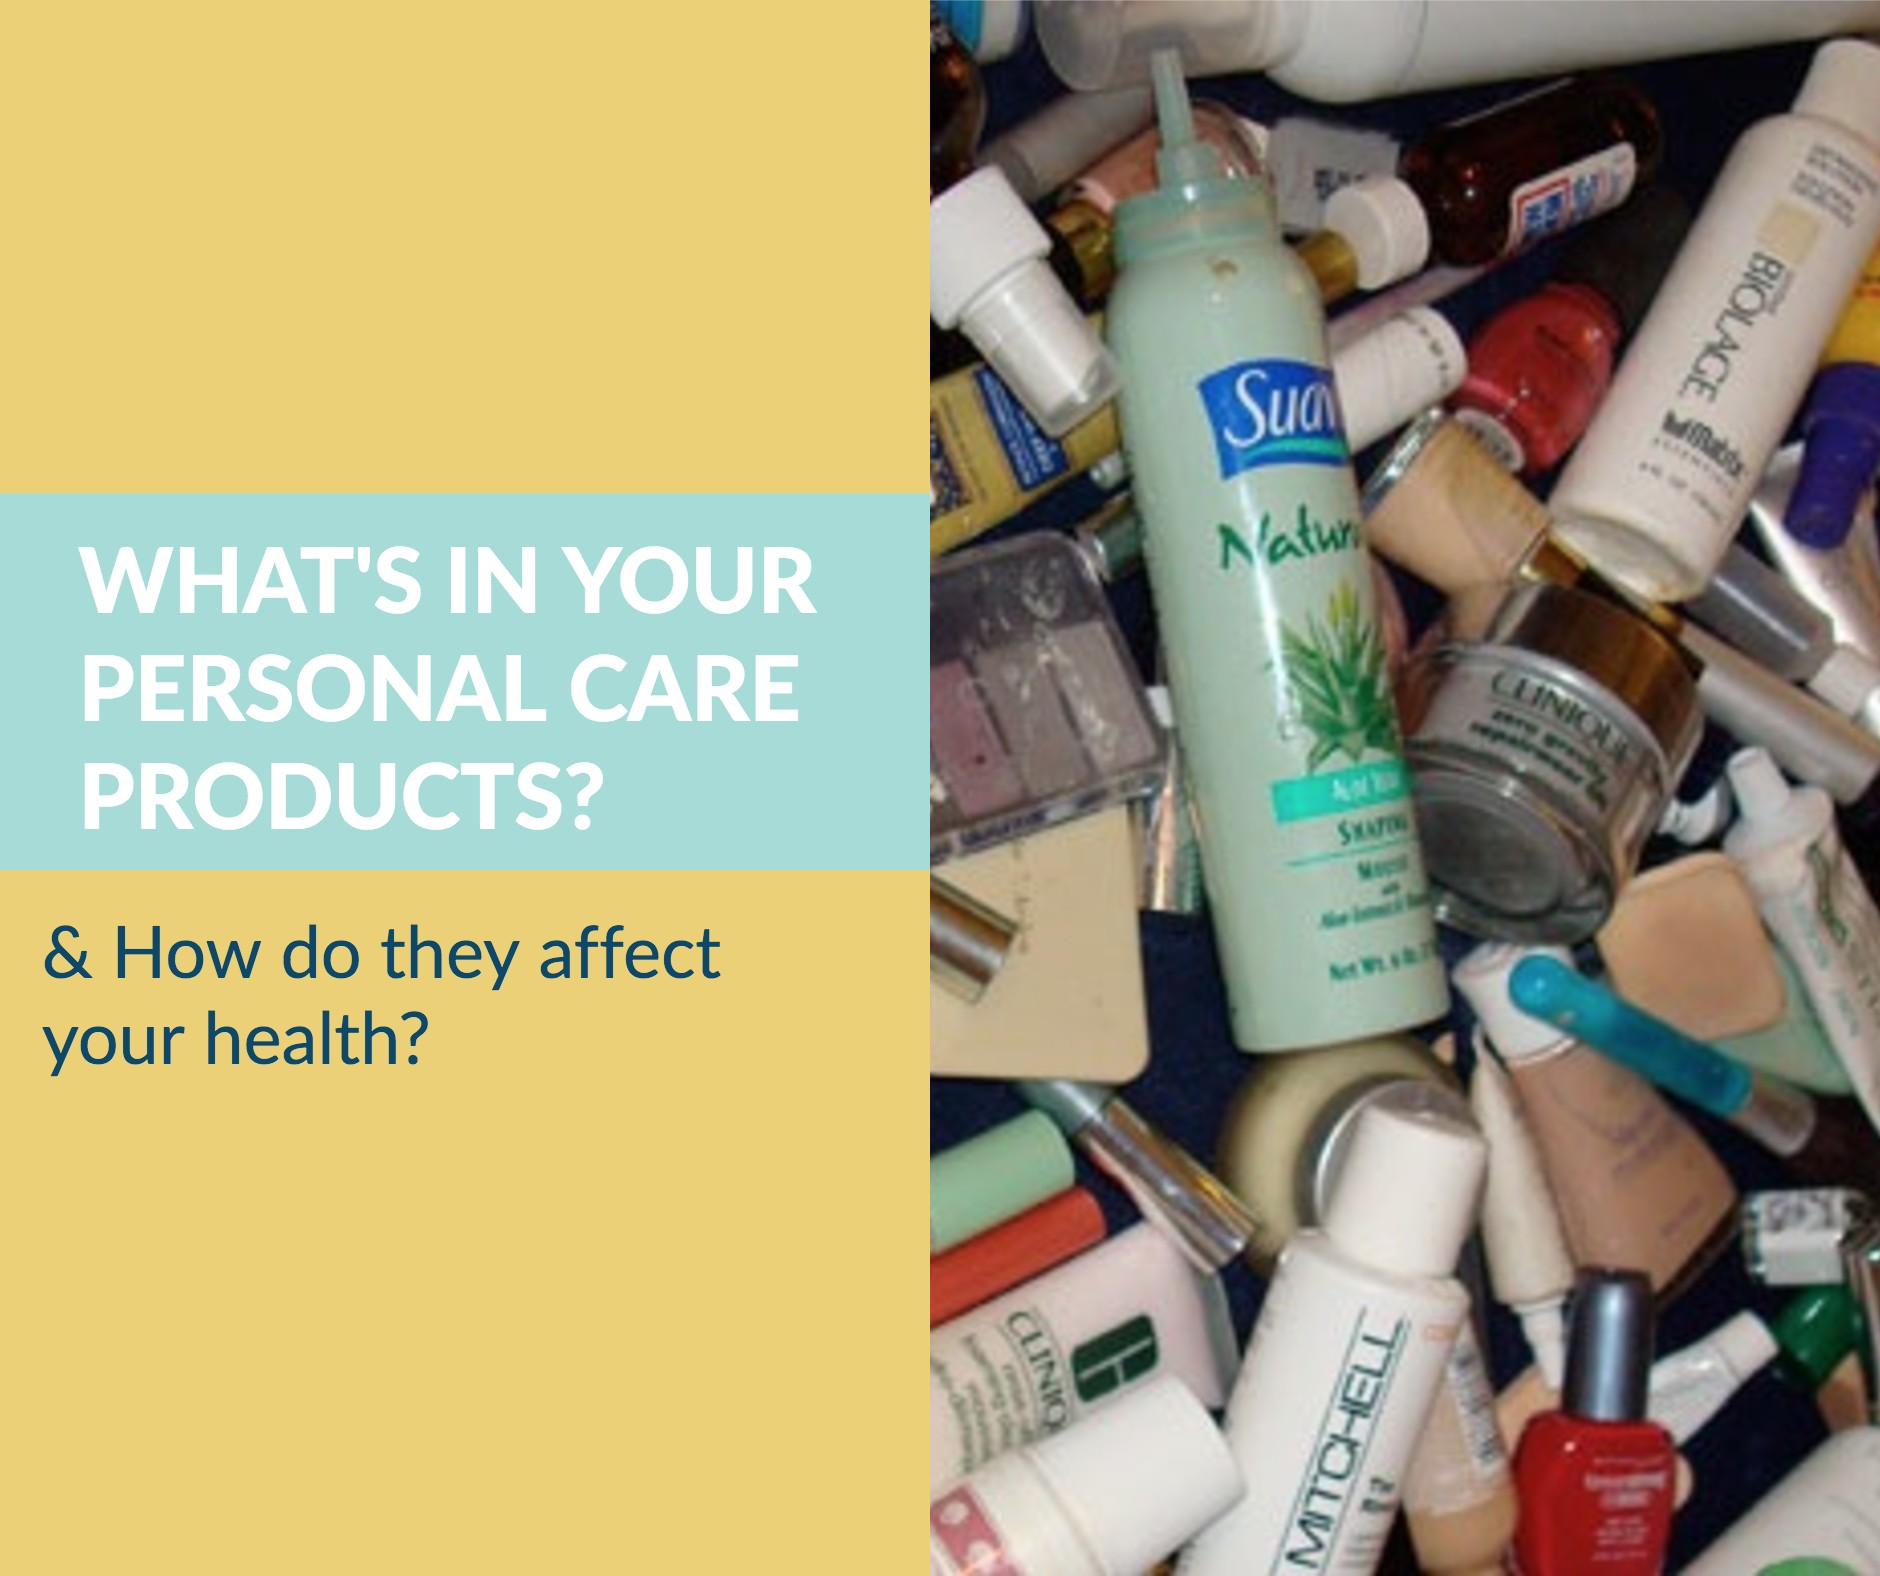 What's In Your Personal Care Products?